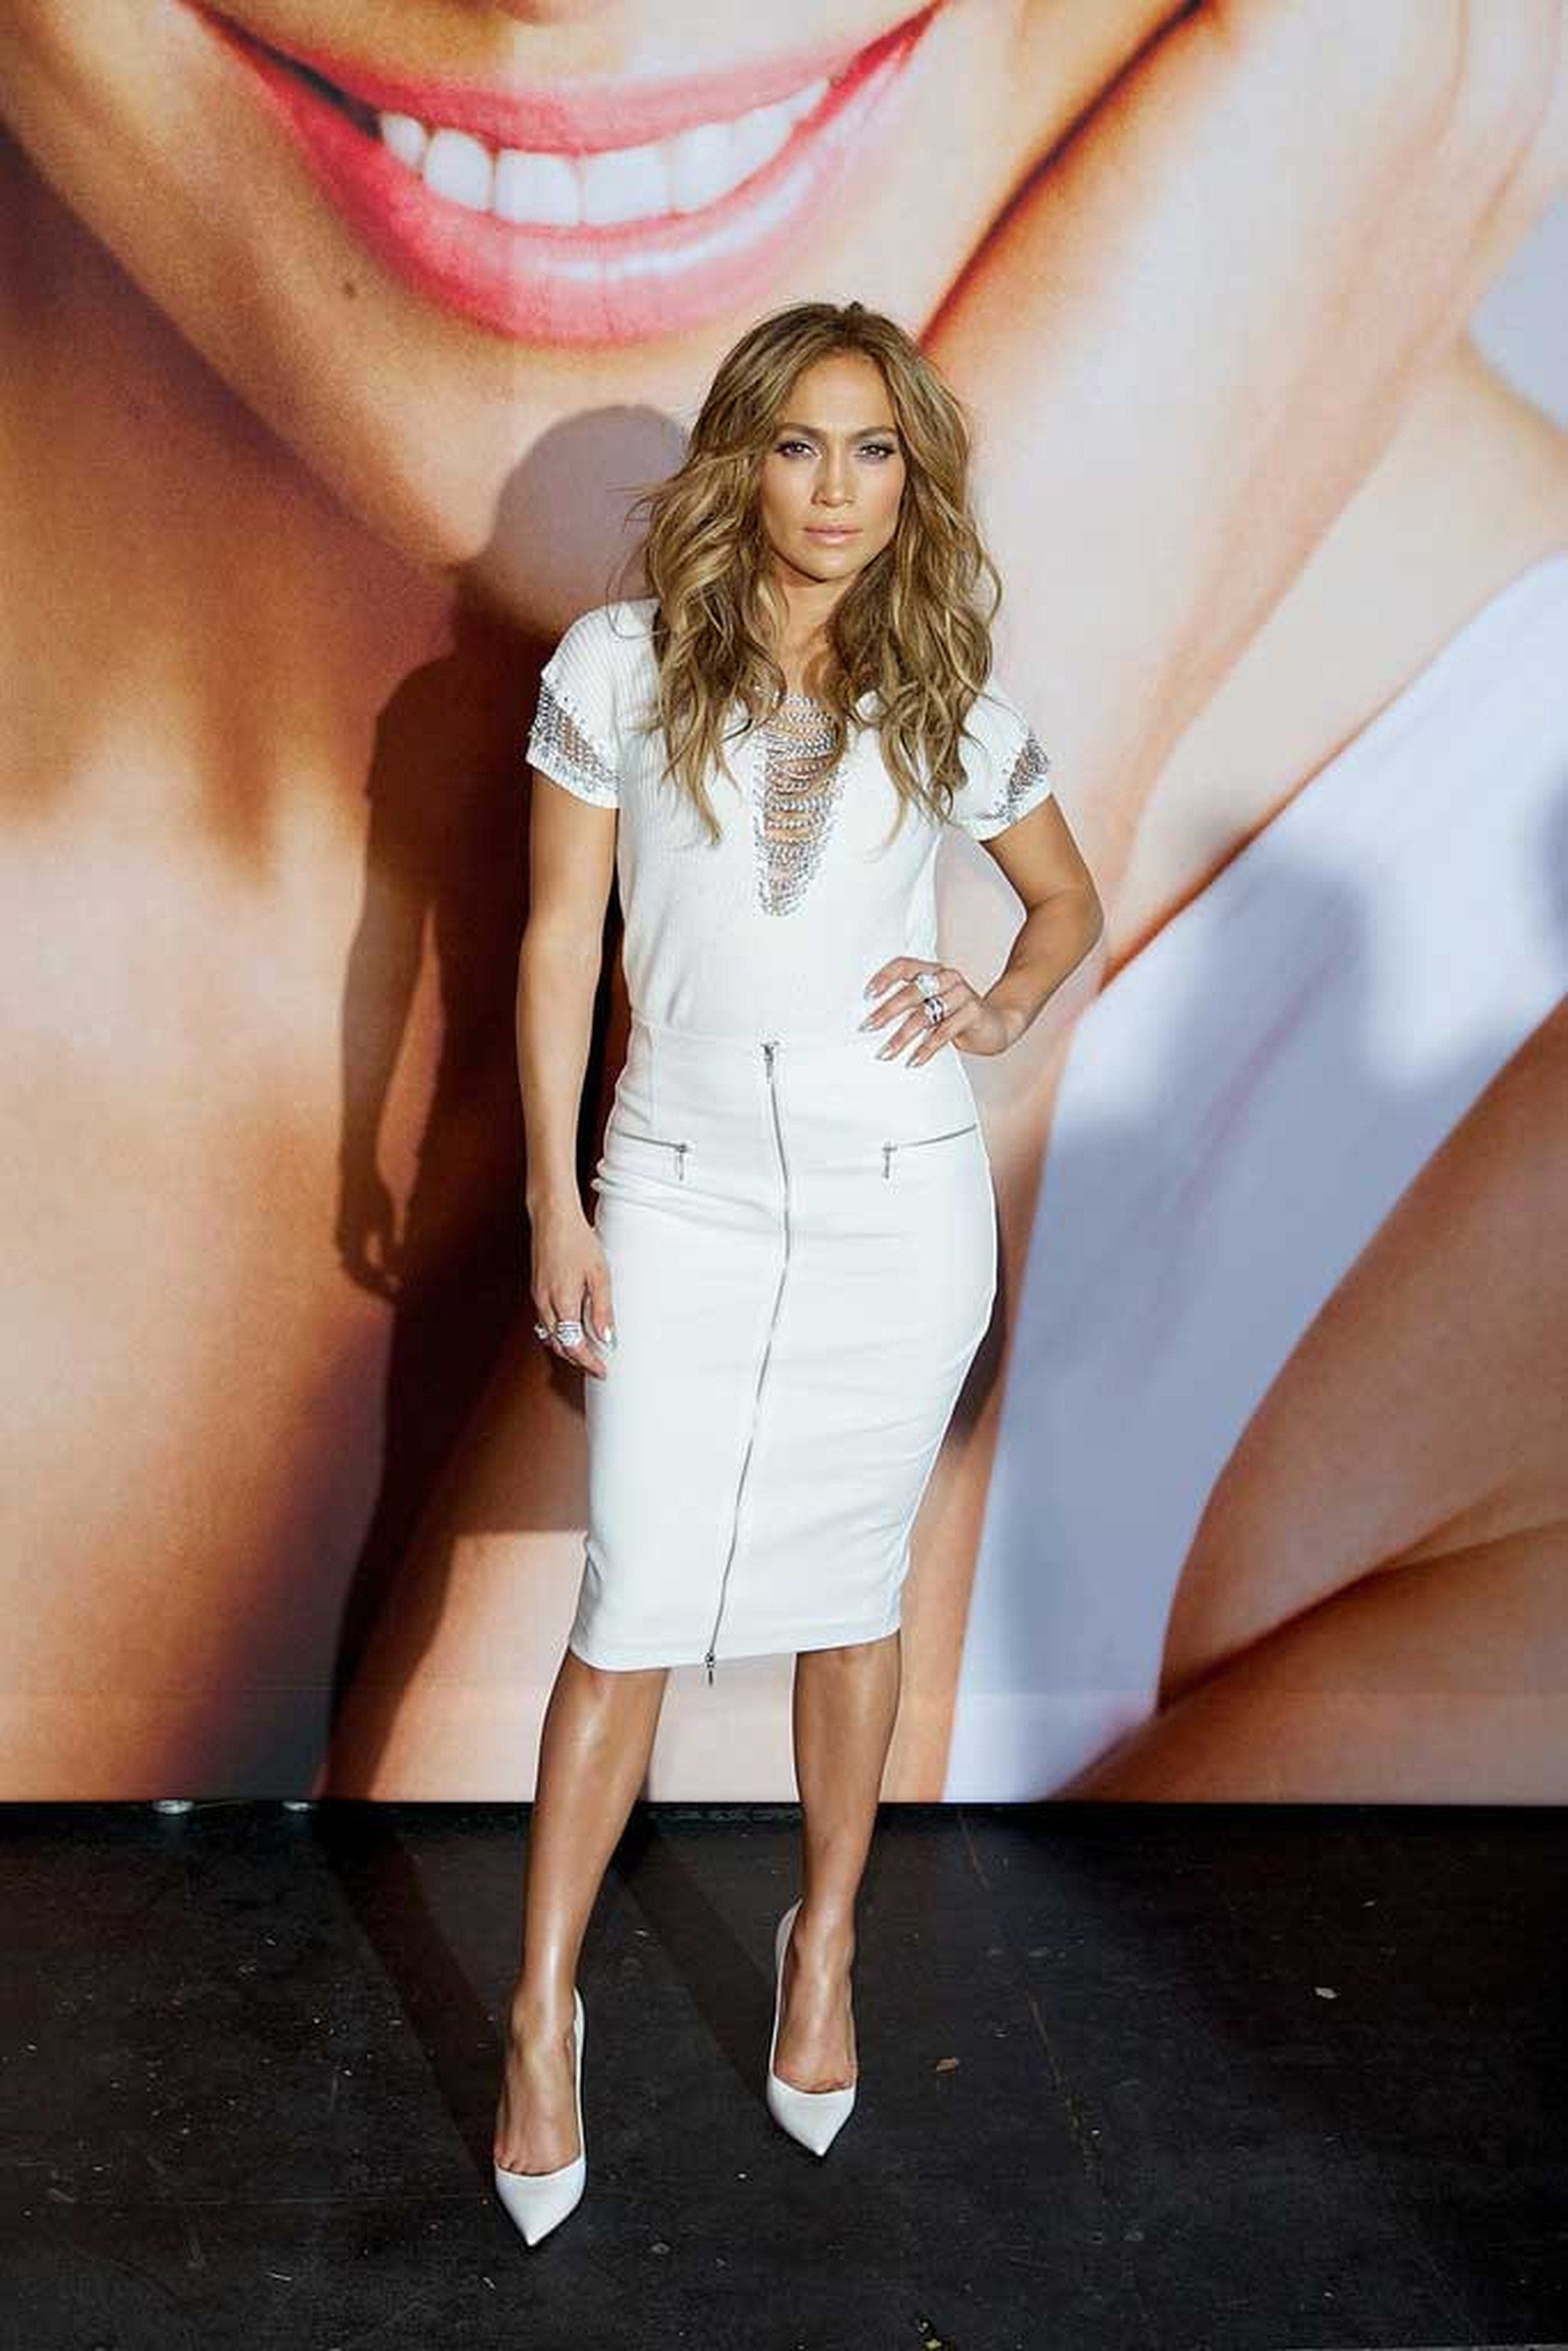 At a private fashion show last Friday, the day after her World Cup performance, Jennifer Lopez paired her slinky chainlink dress with a pair of diamond rings by Demarco.